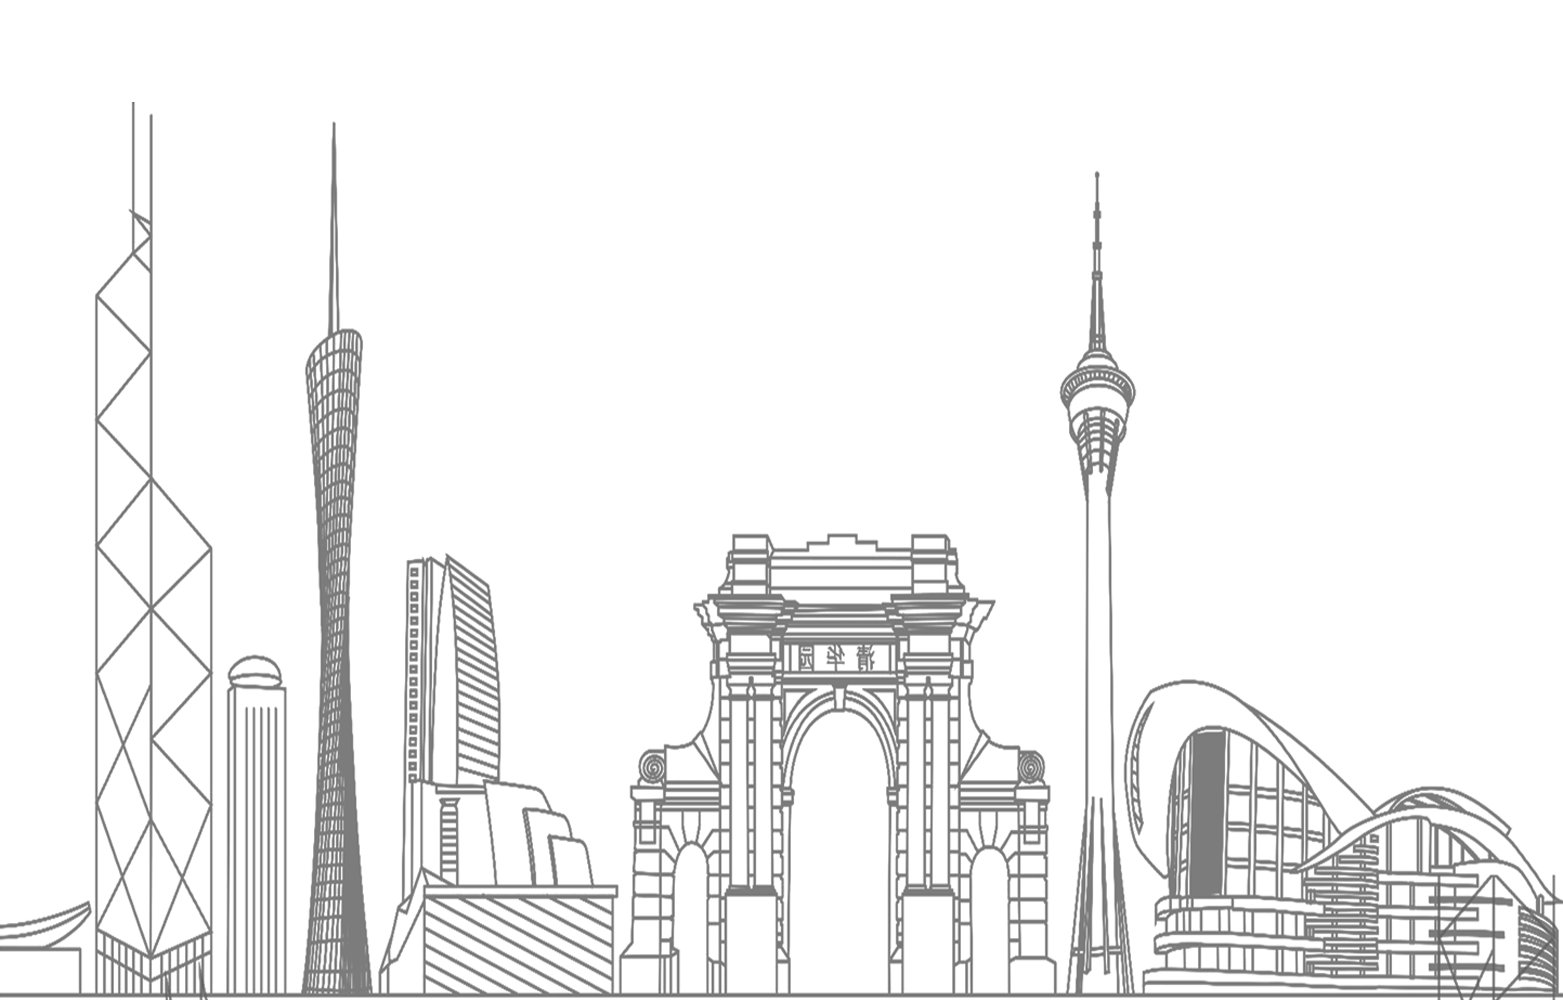 Cities drawing sci fi. Black and white place